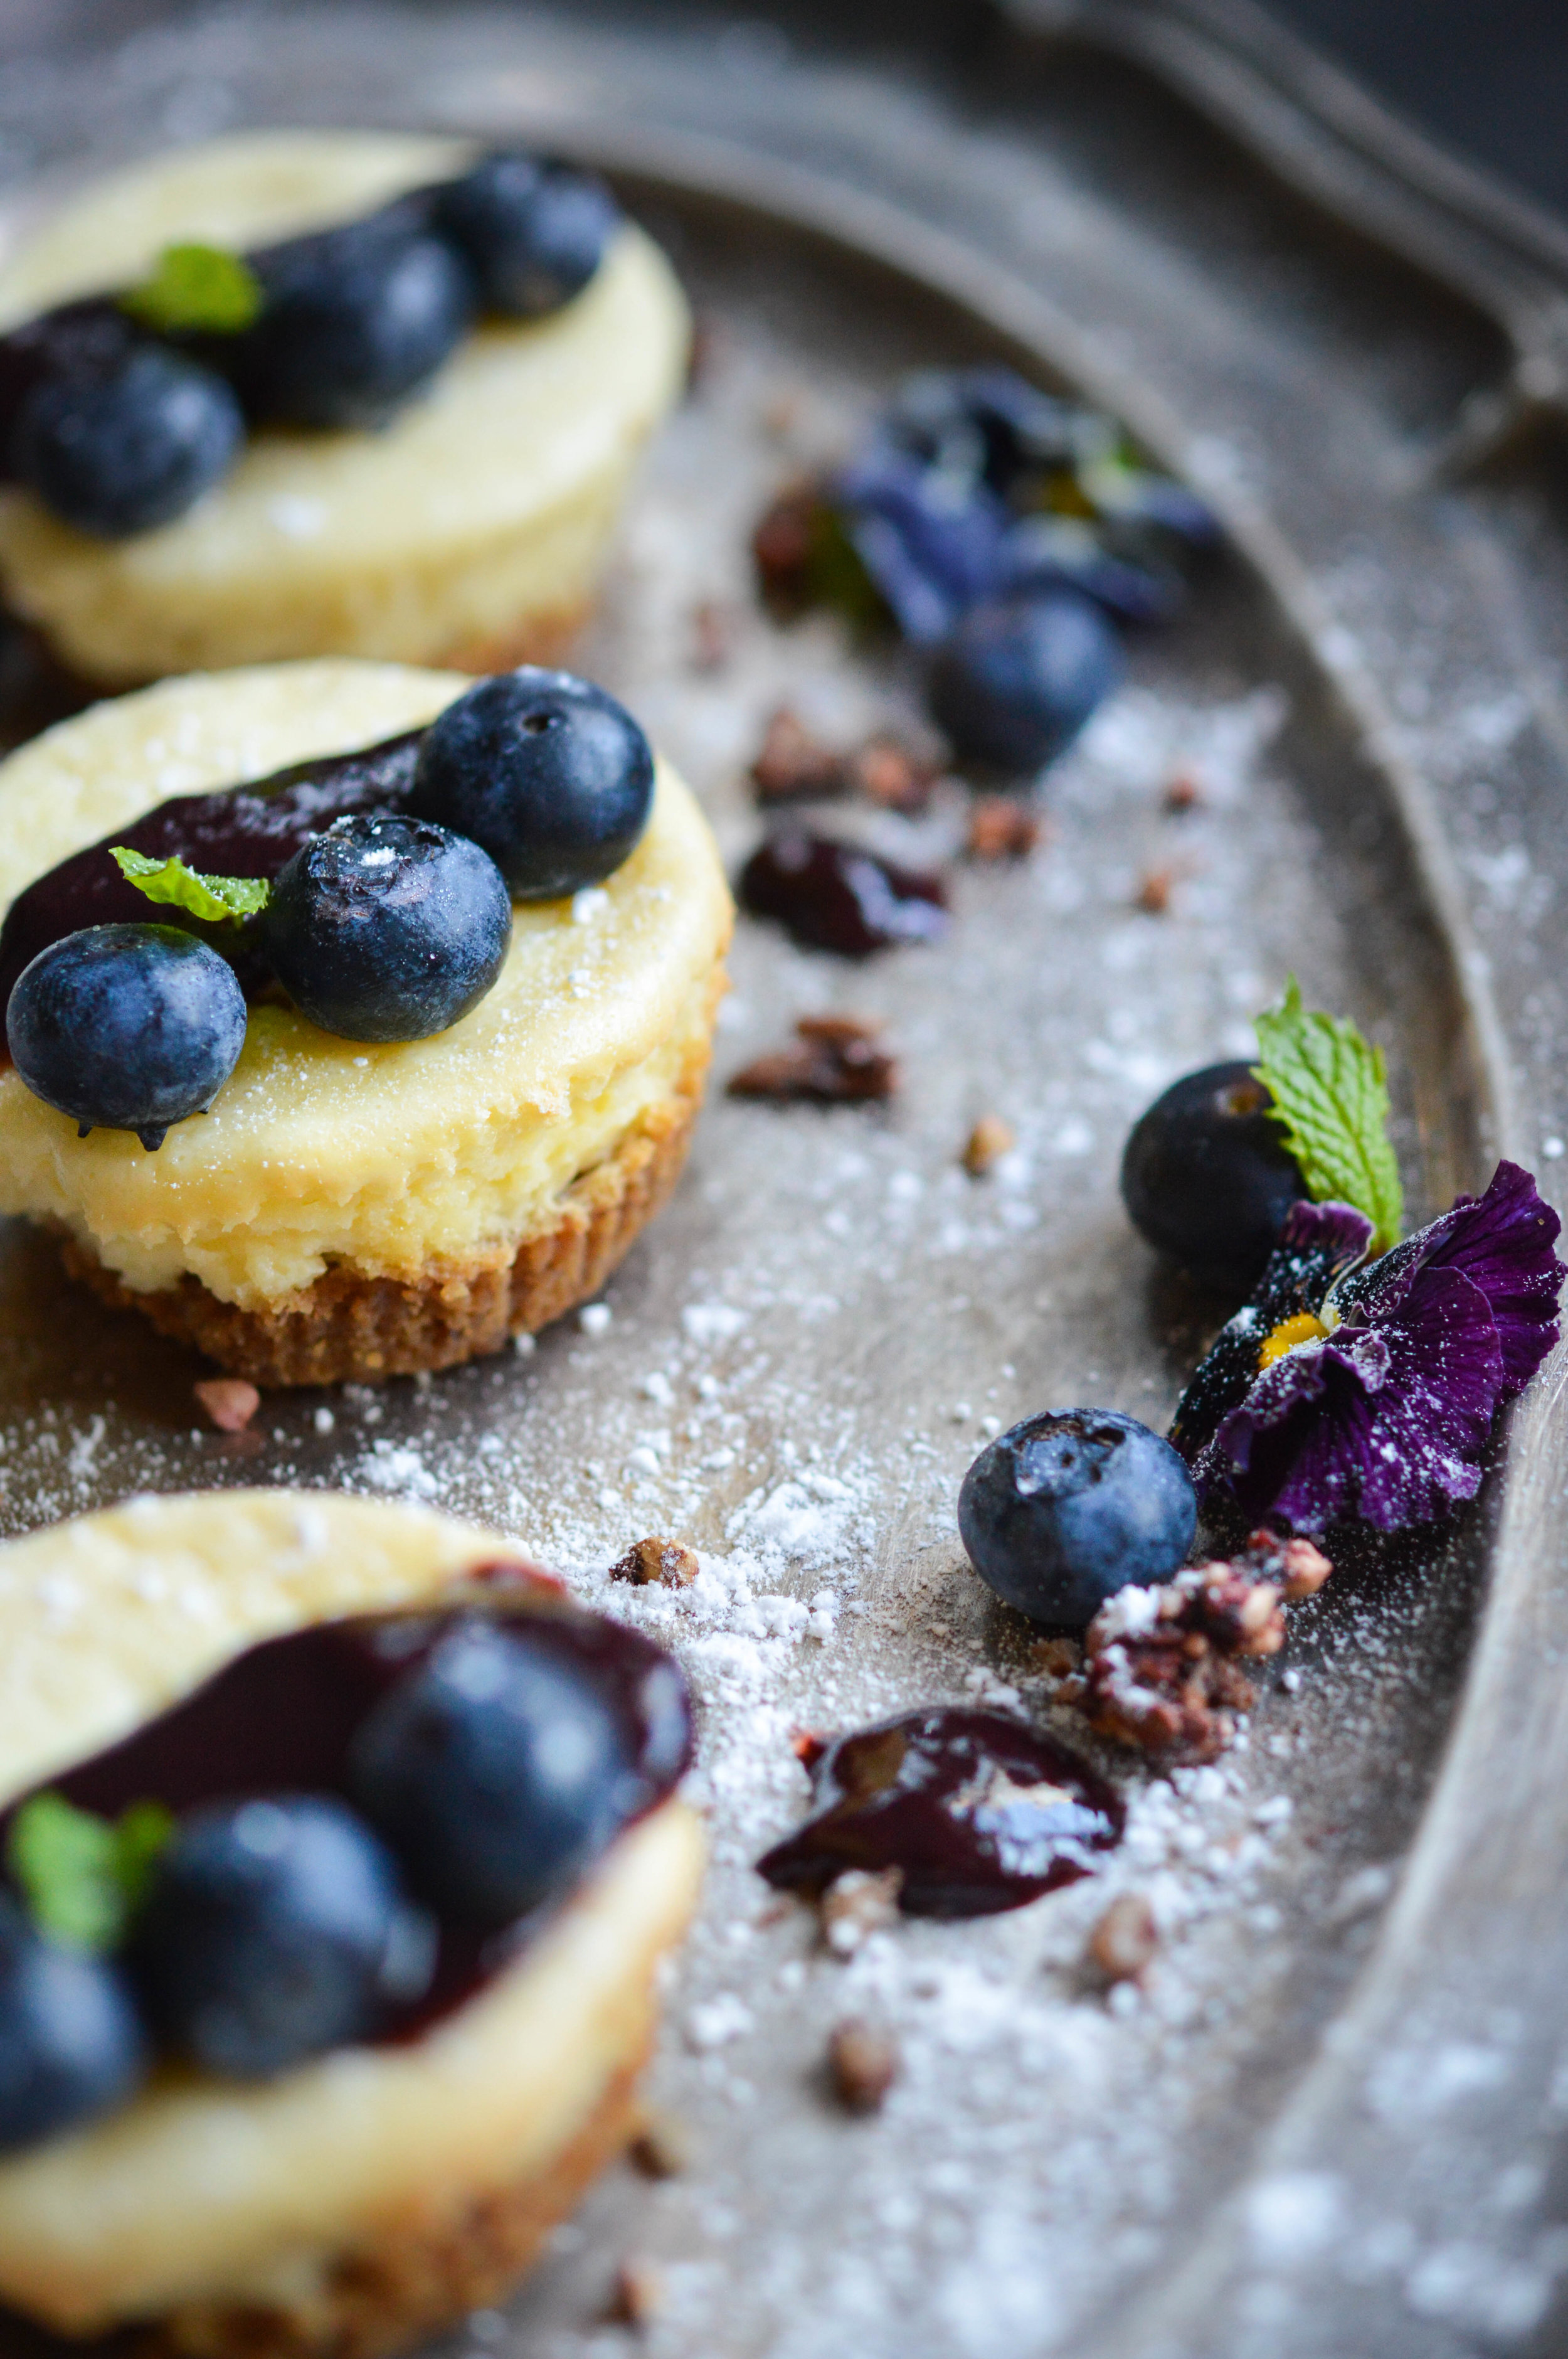 Small baked cheesecakes